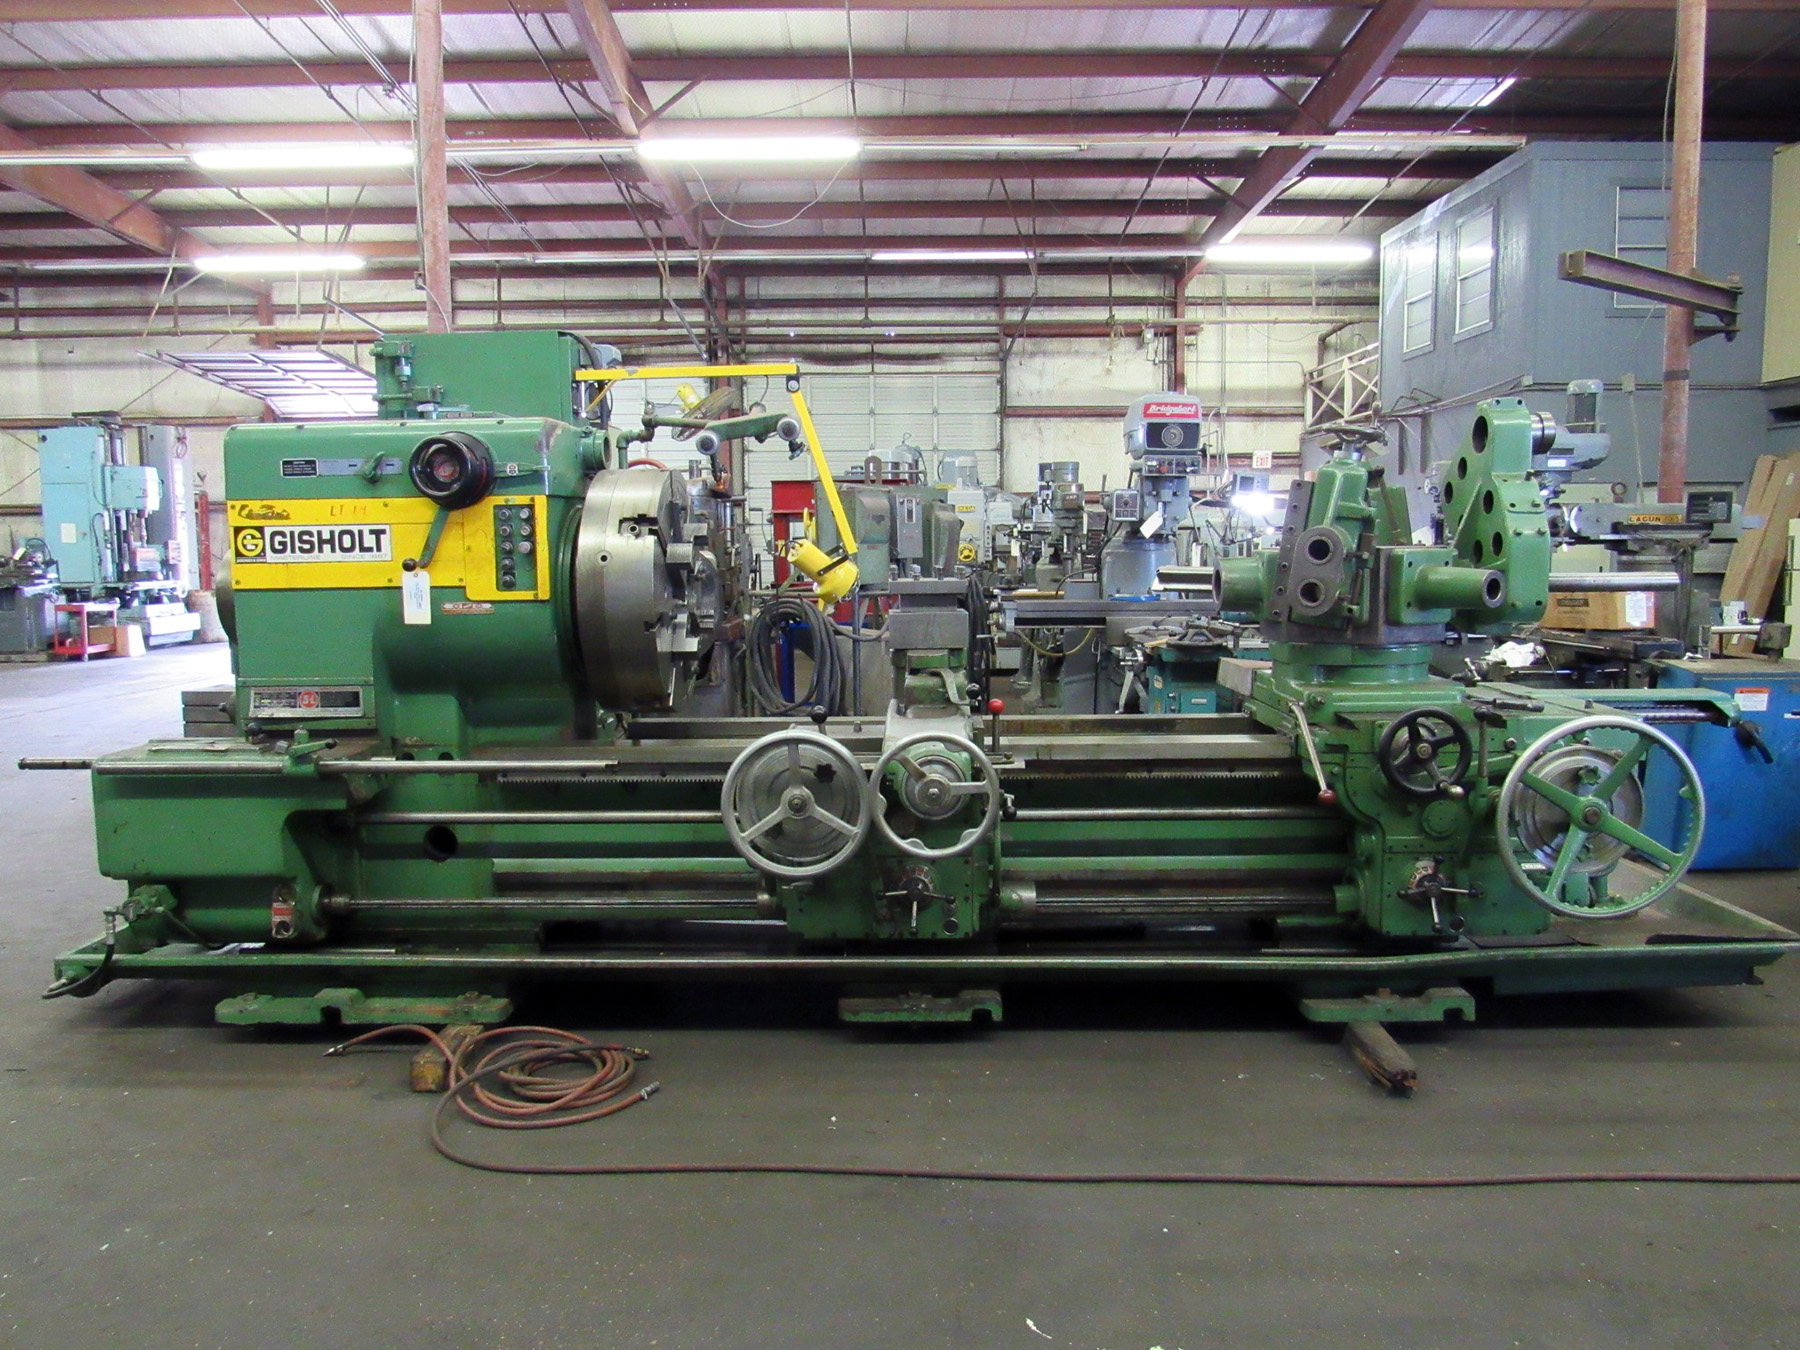 USED, GISHOLT (GIDDINGS & LEWIS) MODEL 5-L TURRET LATHE WITH CROSS SLIDING REAR TURRET